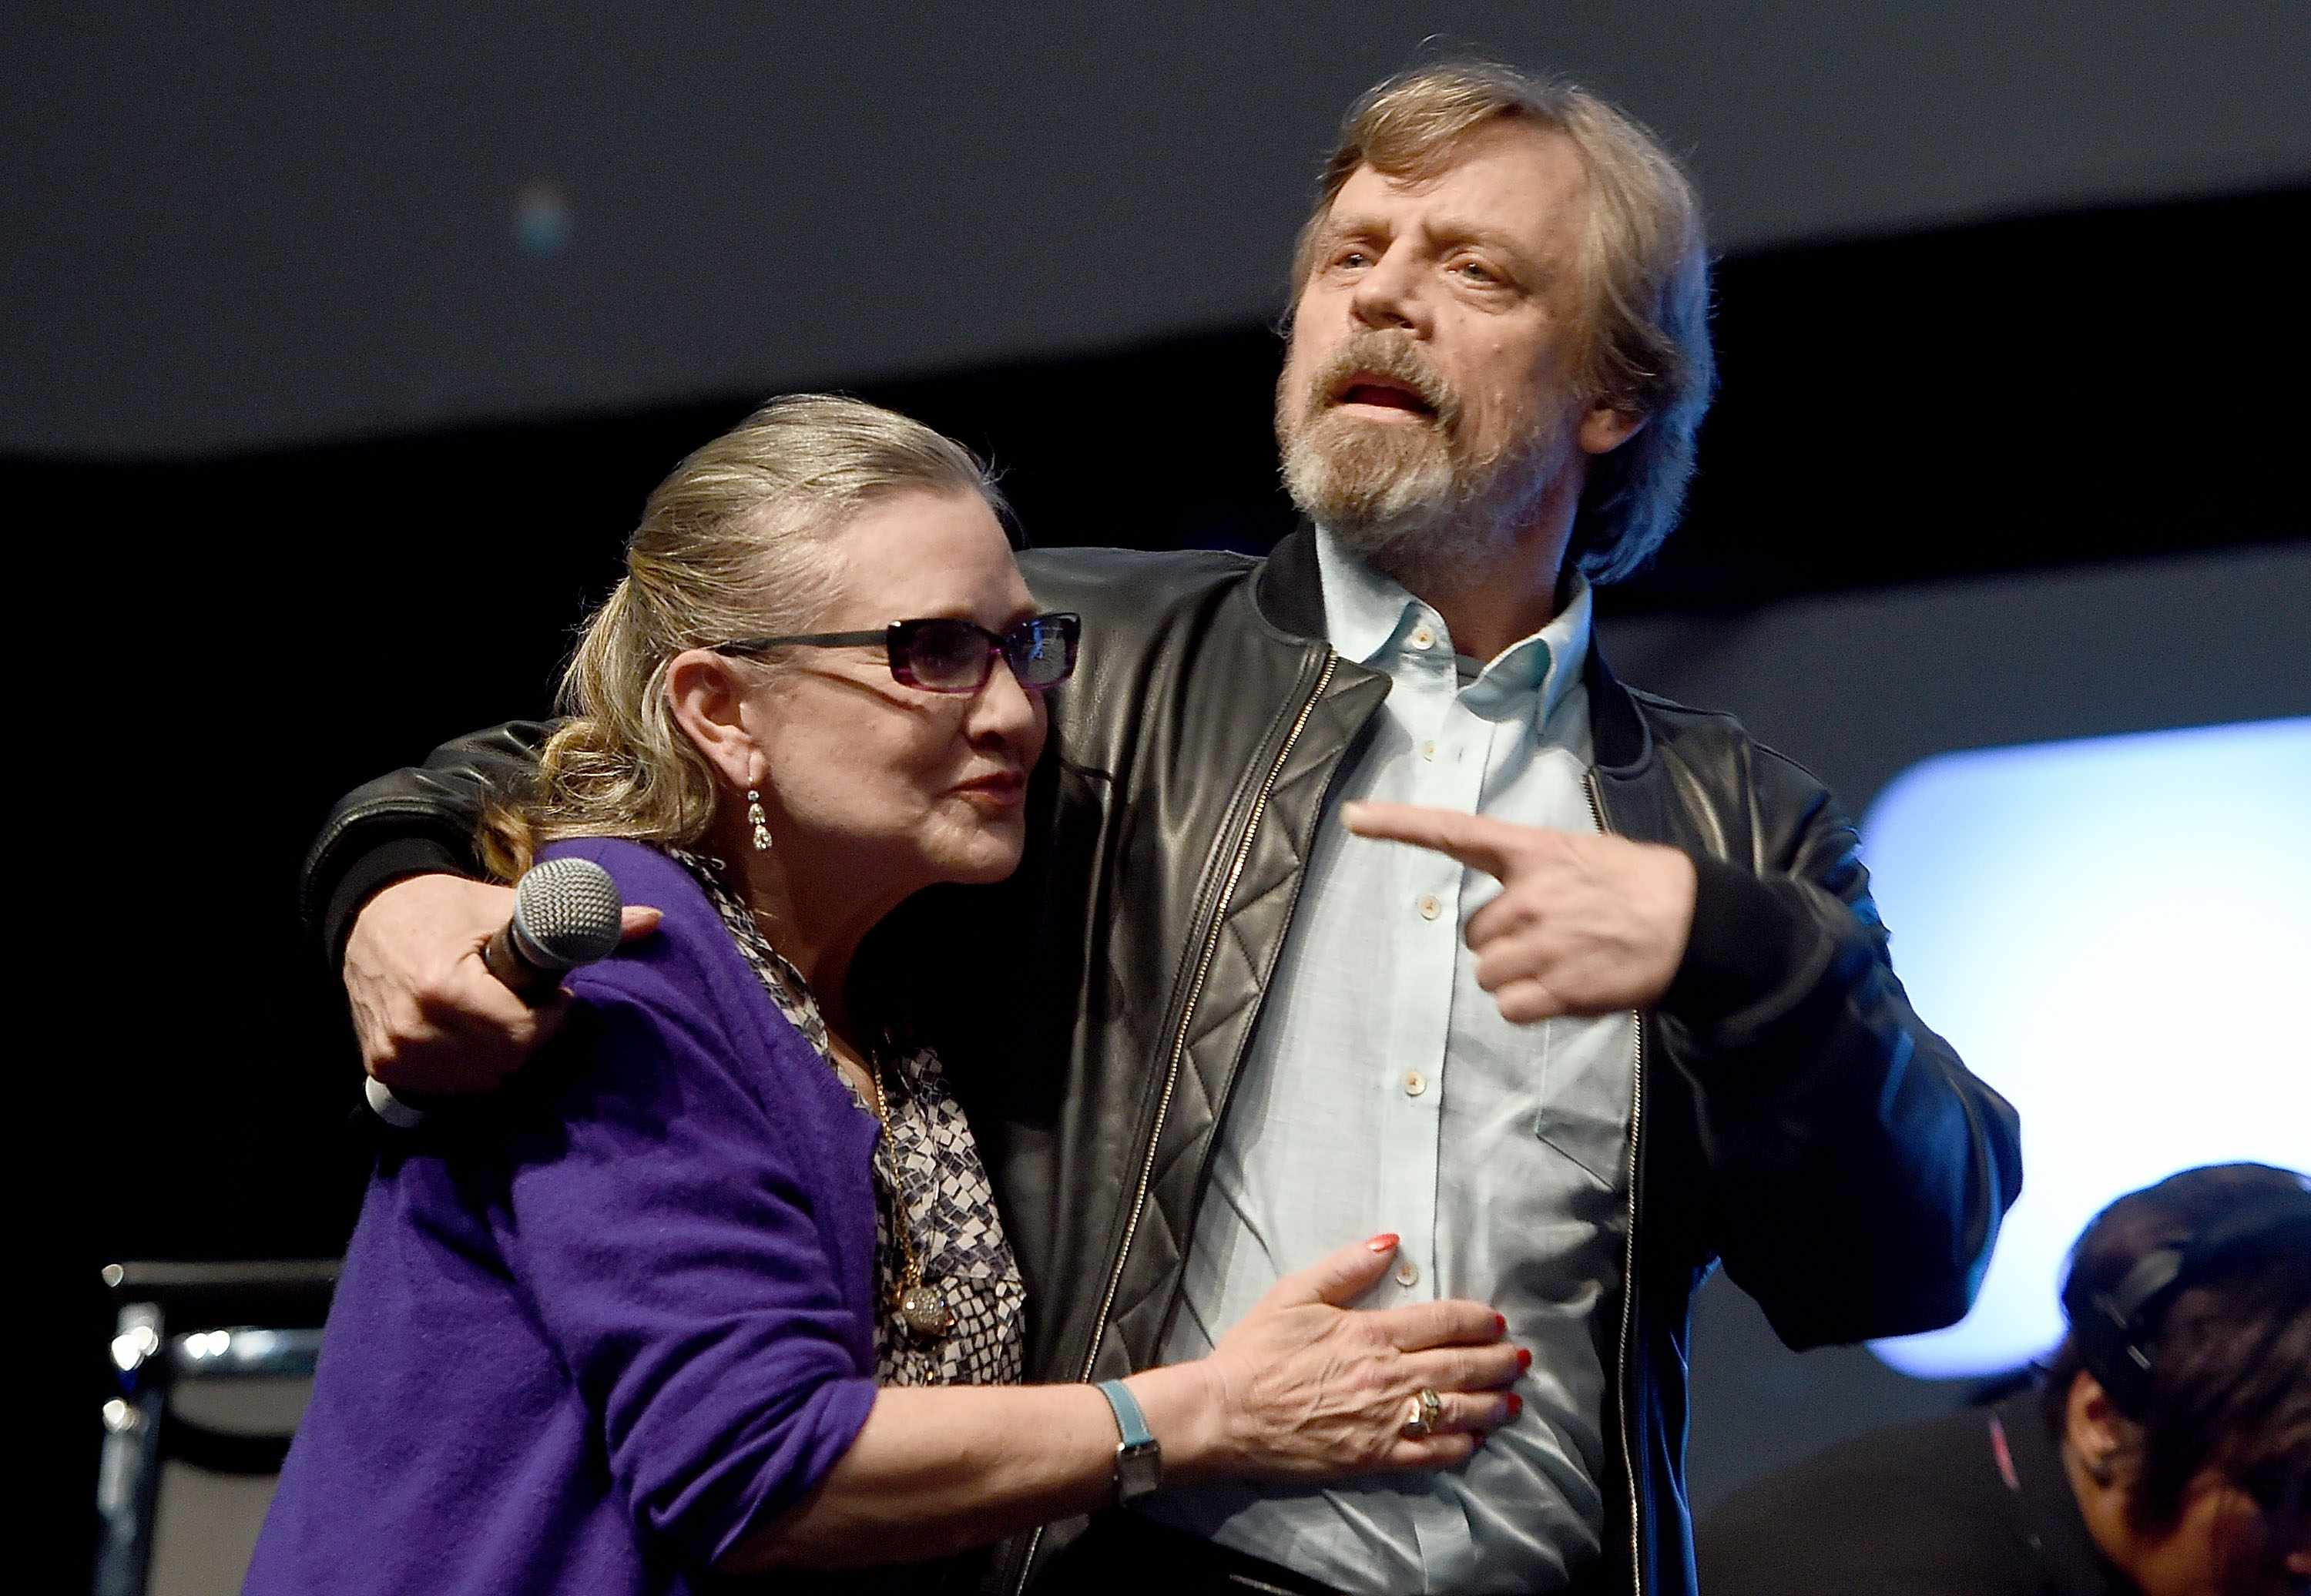 Carrie Fisher and Mark Hamill Star Wars